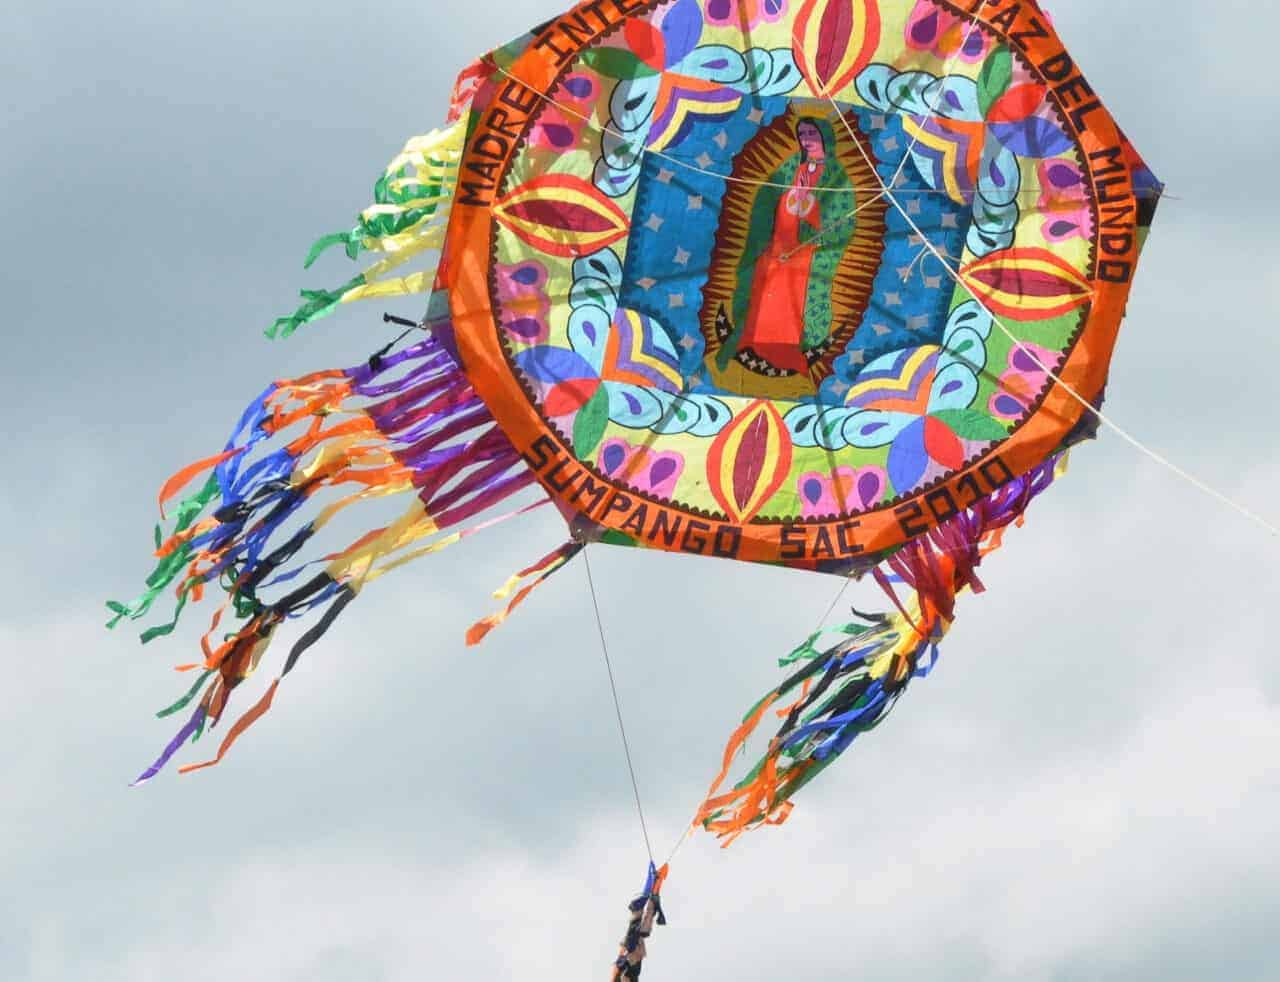 Virgin of Guadalupe kite on Day of the Dead Kite Festival Guatemala